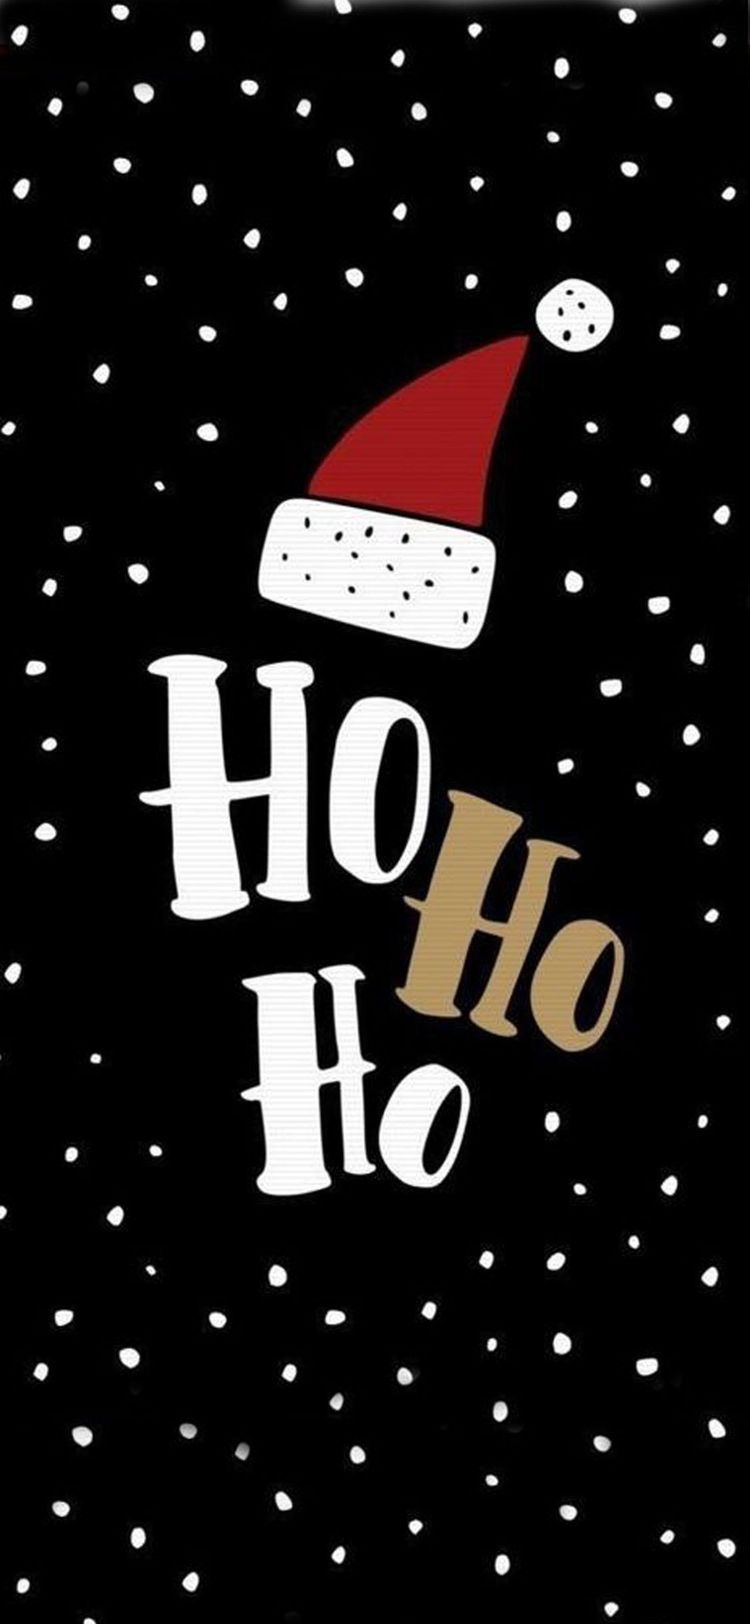 Pin By Cassandra King On Misc Christmas Wallpaper Iphone Cute Wallpaper Iphone Christmas Christmas Phone Wallpaper